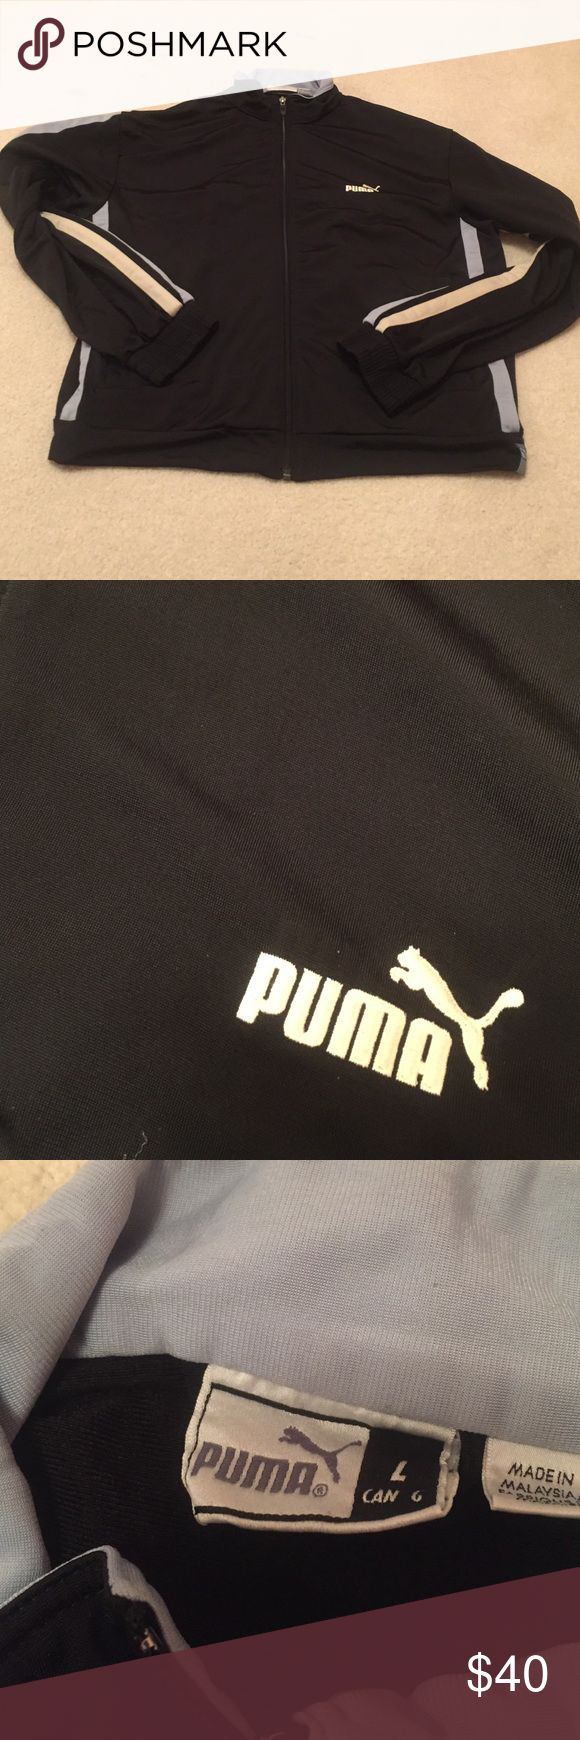 Men's Puma track jacket Full zip! Black with white and light blue stripes along arms. Light blue collar. Super soft! Matching pants are available if you want the full set, but are not currently listed on website. Inquire within if pants are desired! Puma Jackets & Coats